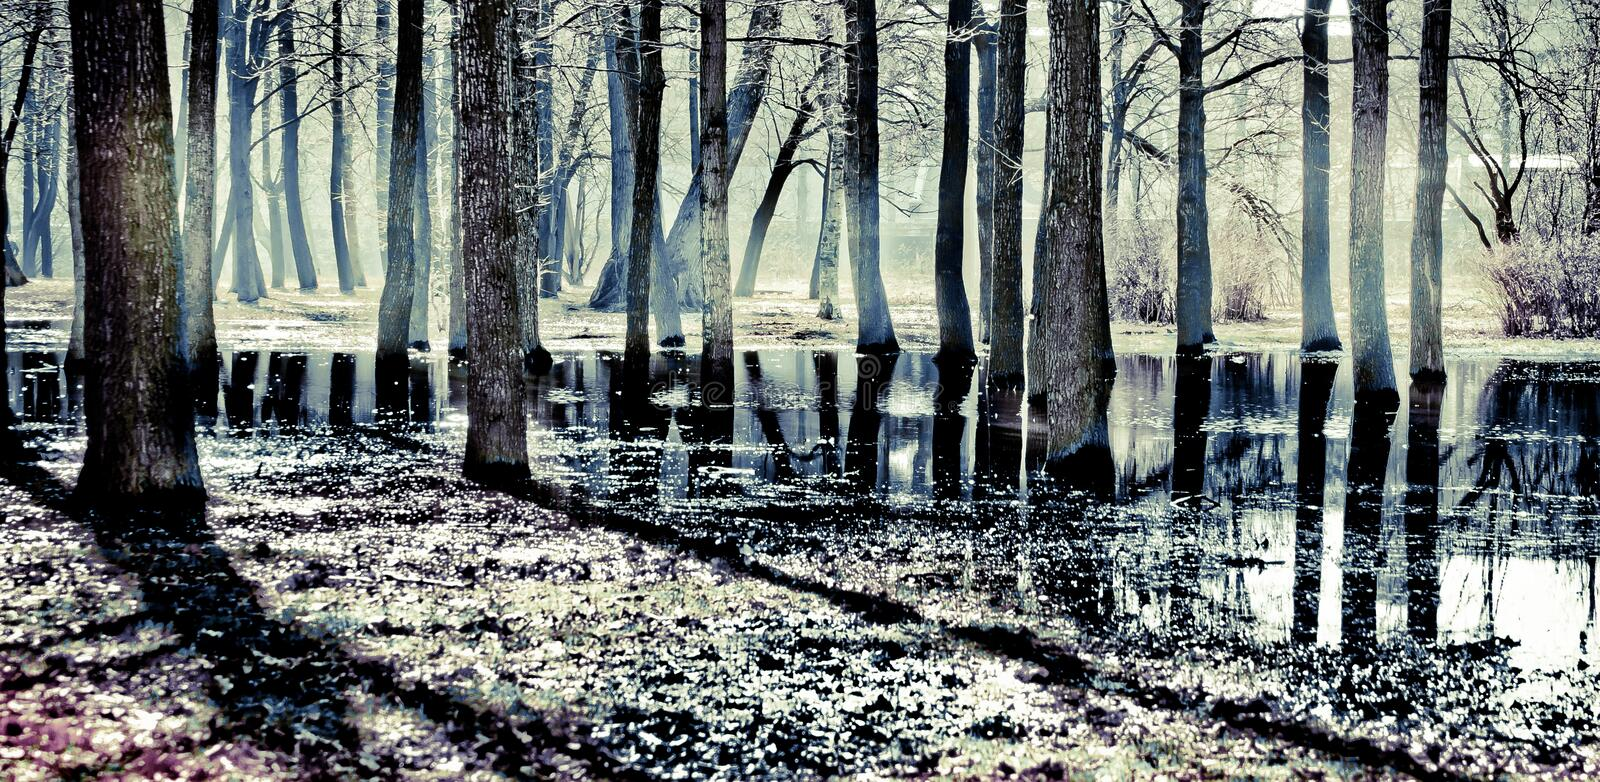 A park in early spring with melt water. On the ground stock photography